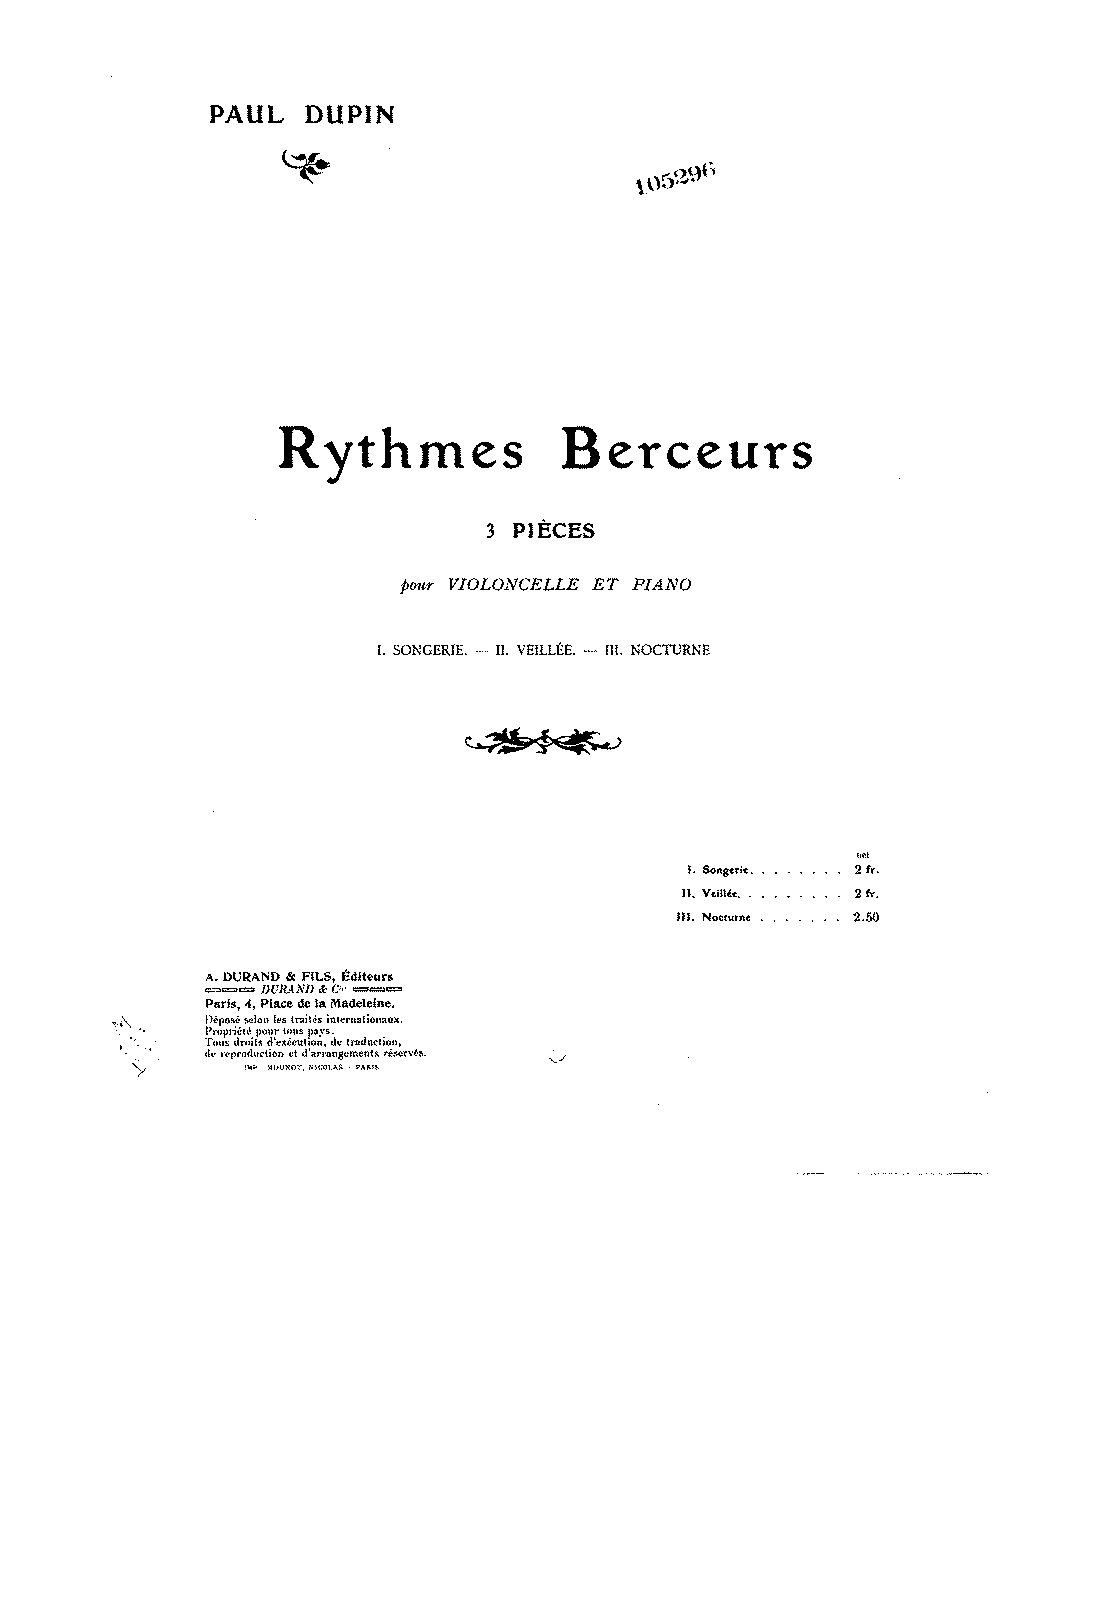 PMLP136130-Dupin - Rythmes Berceurs 3 Pieces for Cello and Piano score.pdf